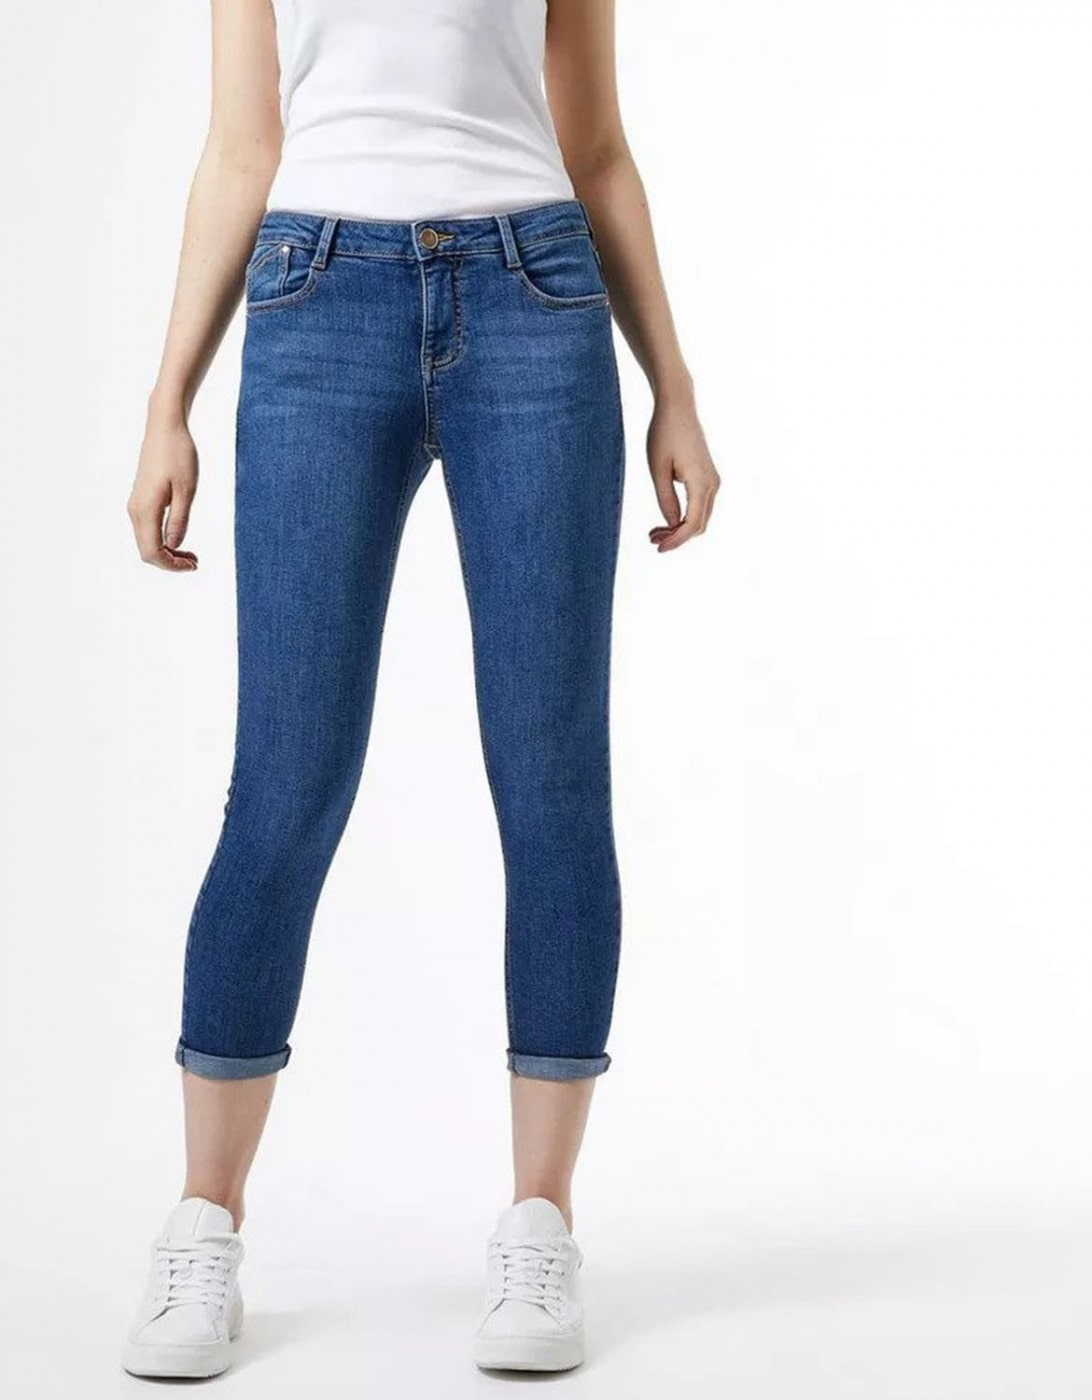 Blue Cropped Skinny Fit Jeans By Dorothy Perkins Harper